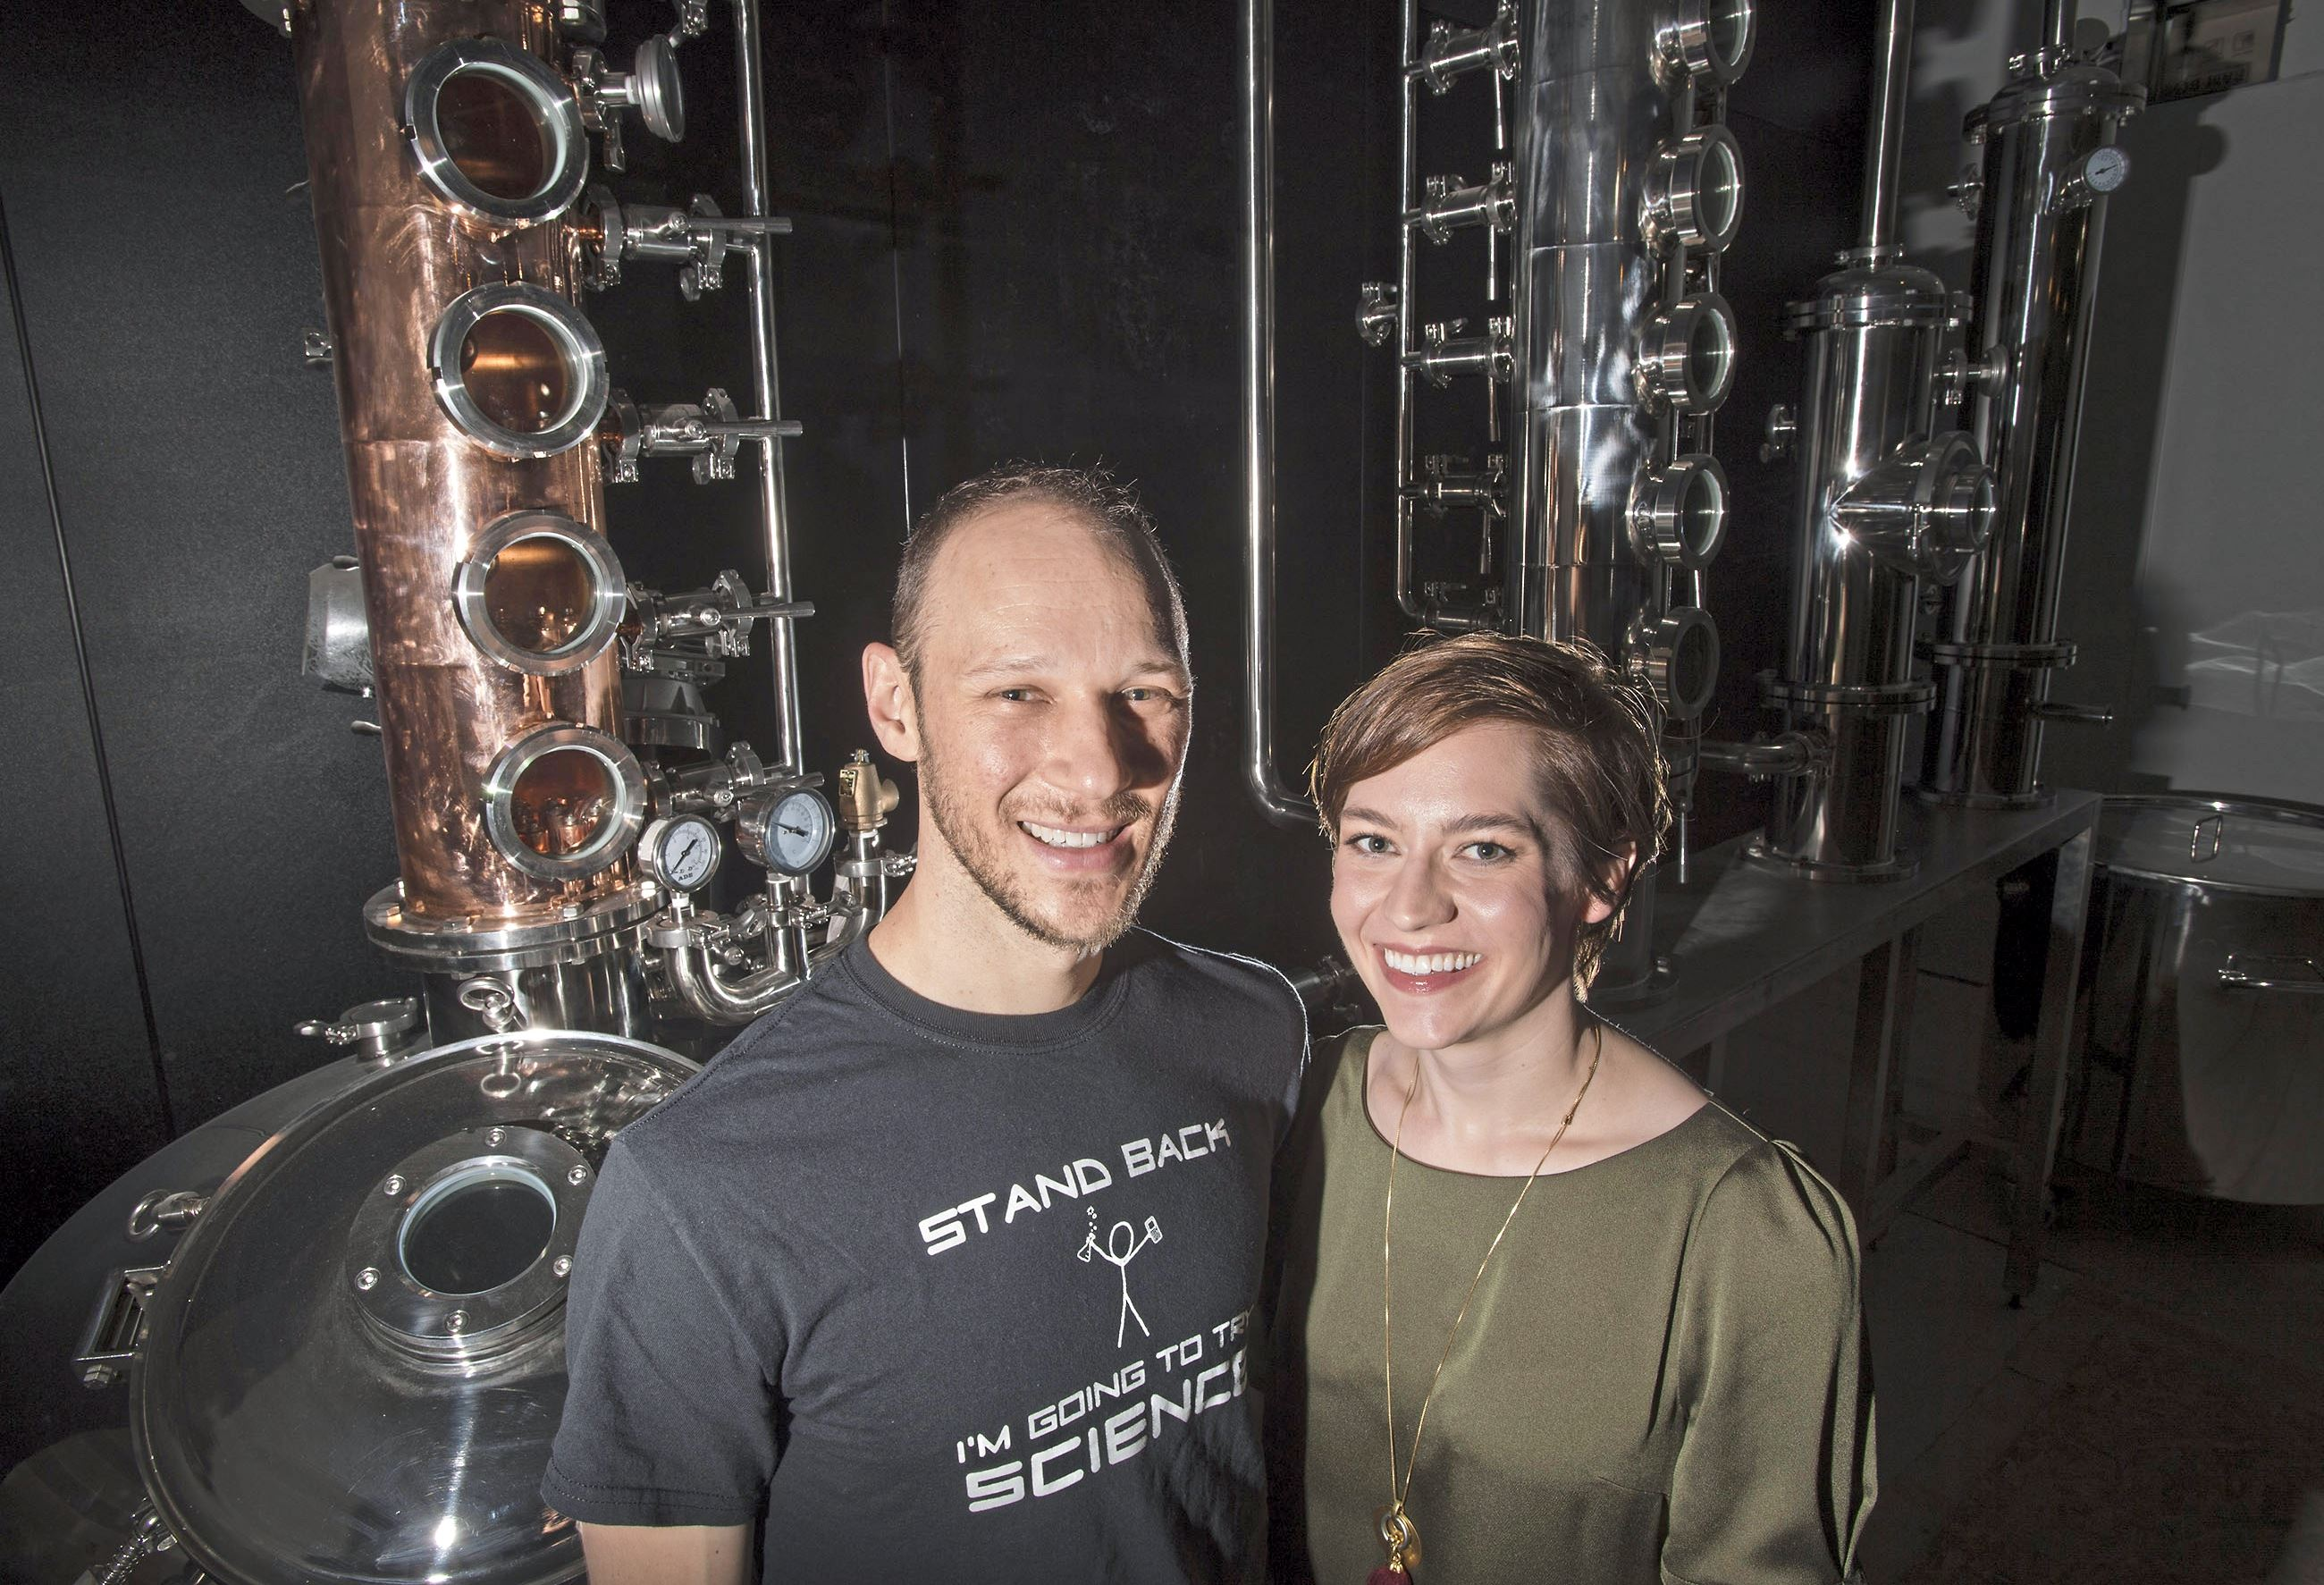 20171012scCarnegie21-1 Owners Ryan and Sarah Kanto pose for a portrait with their still at Quantum Spirits distillery in Carnegie.